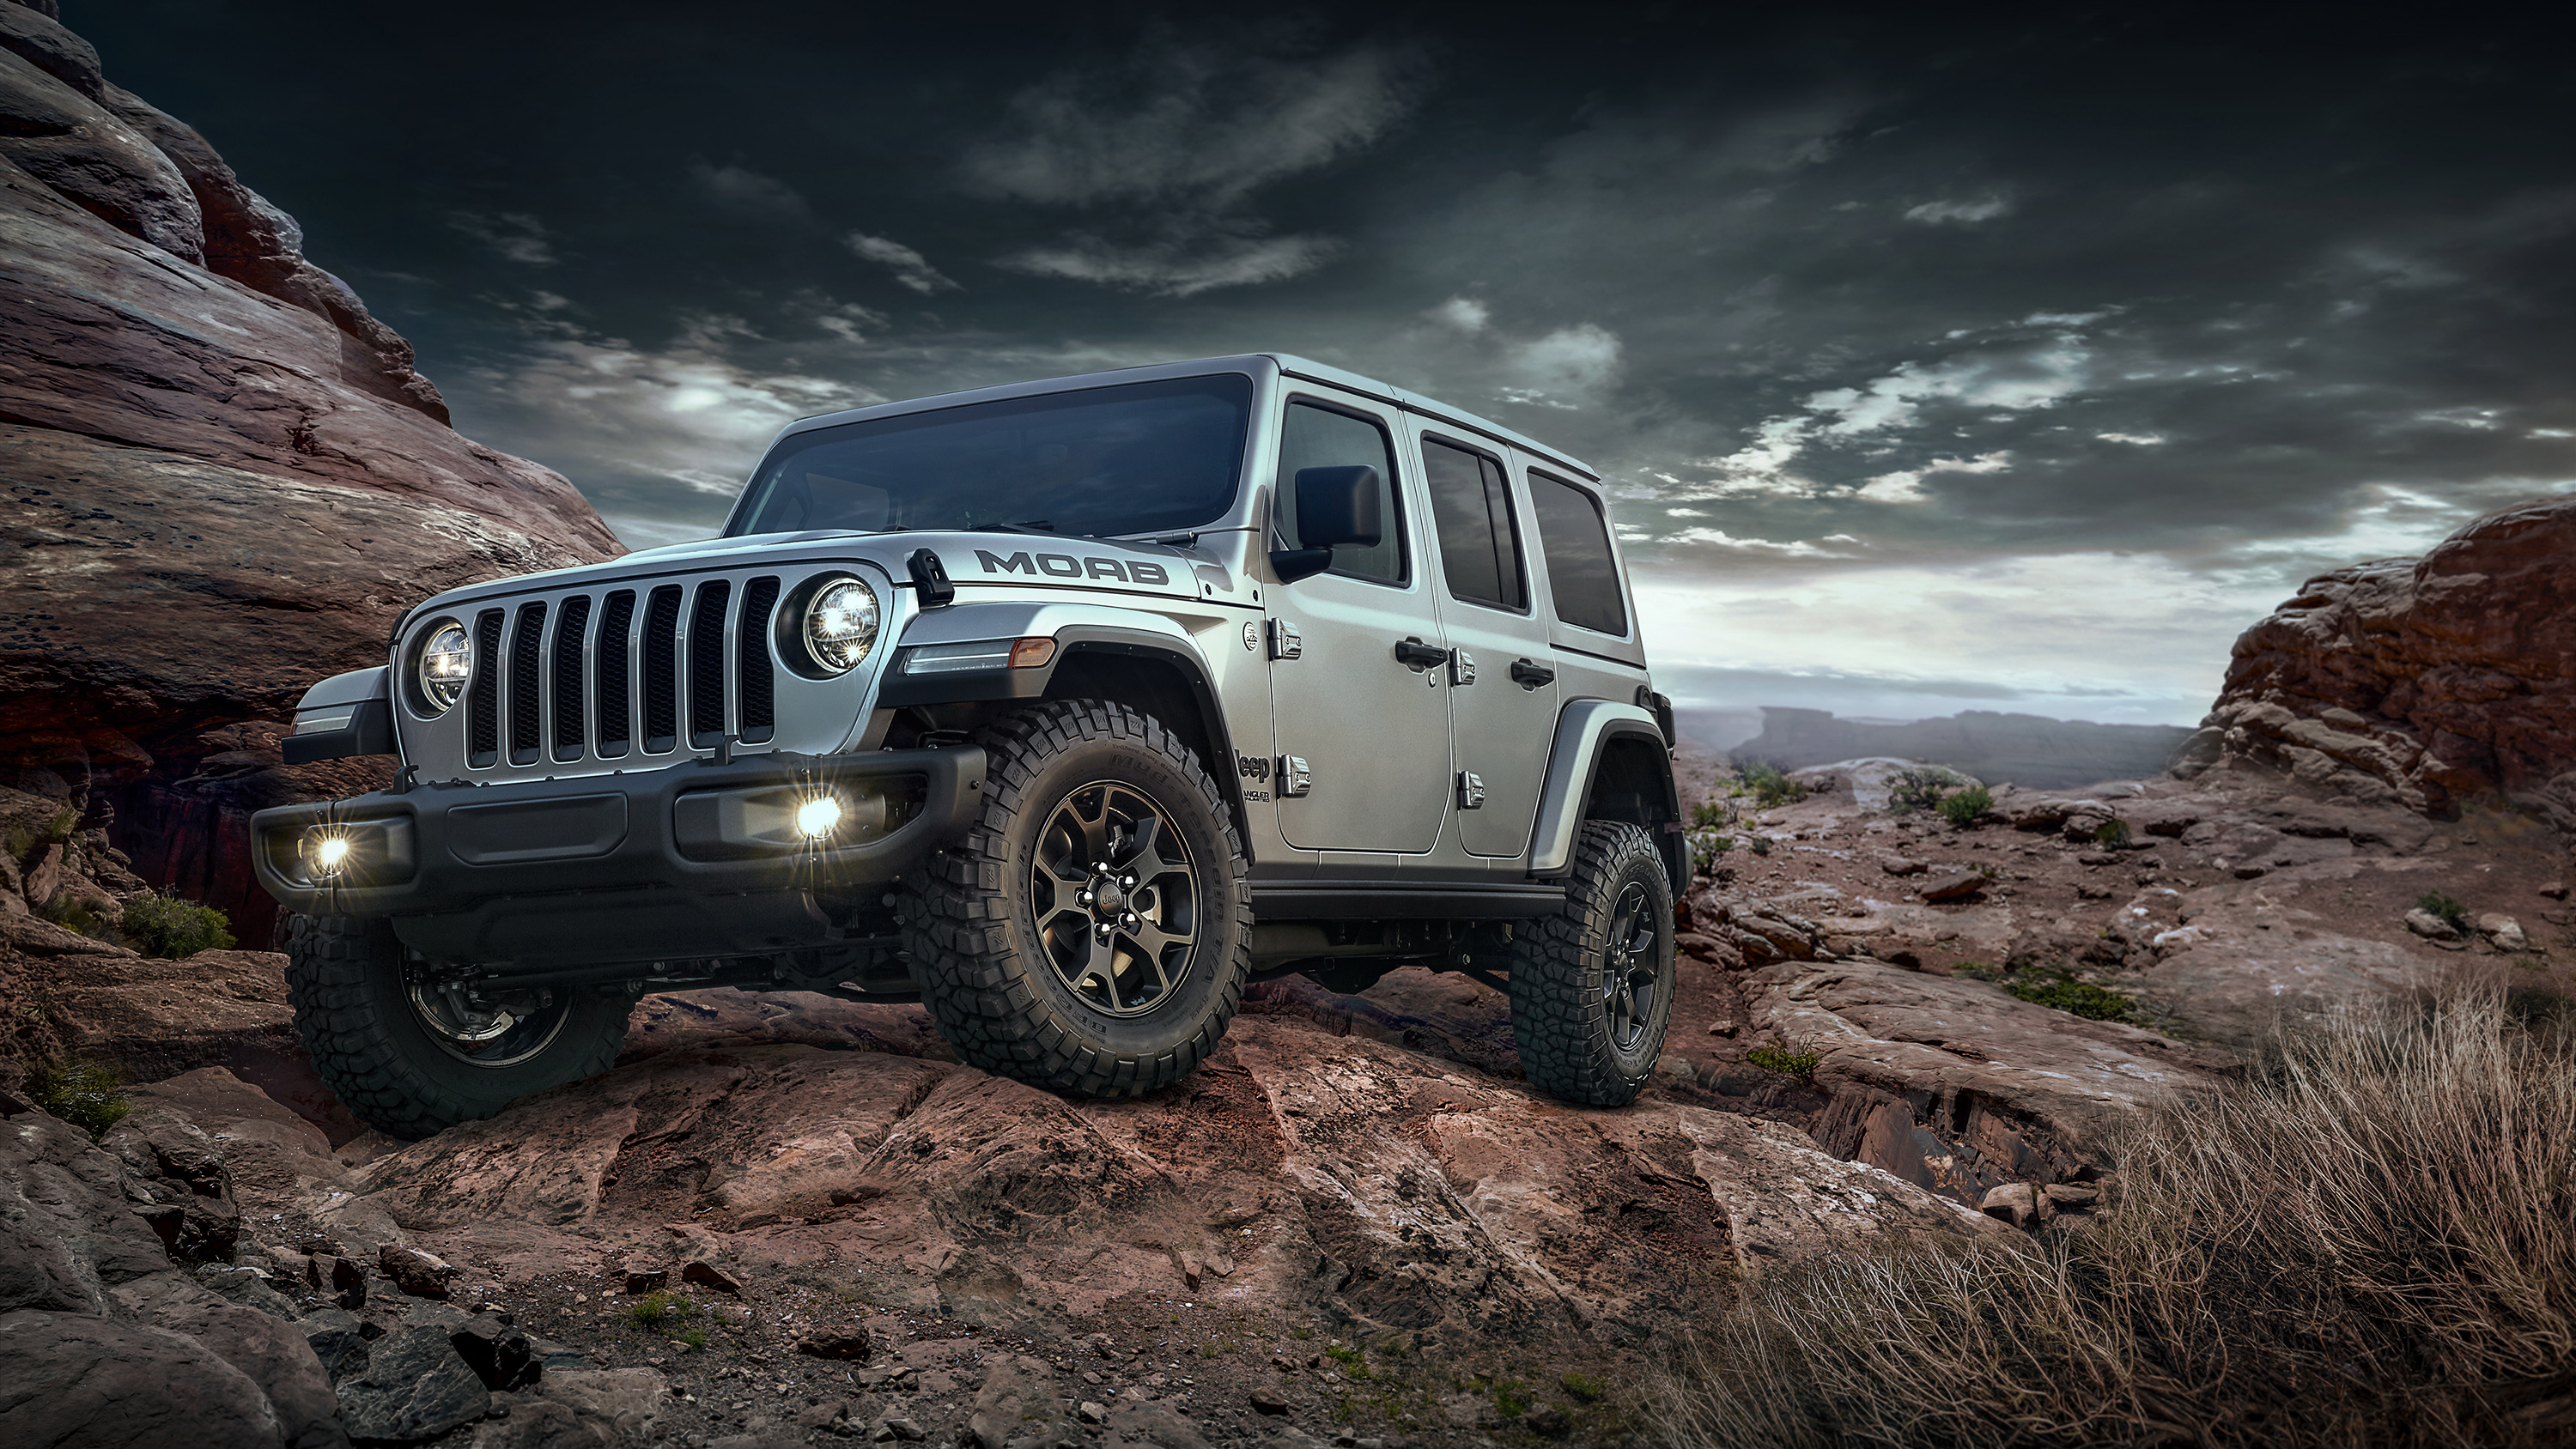 2018 jeep wrangler unlimited moab edition wallpaper